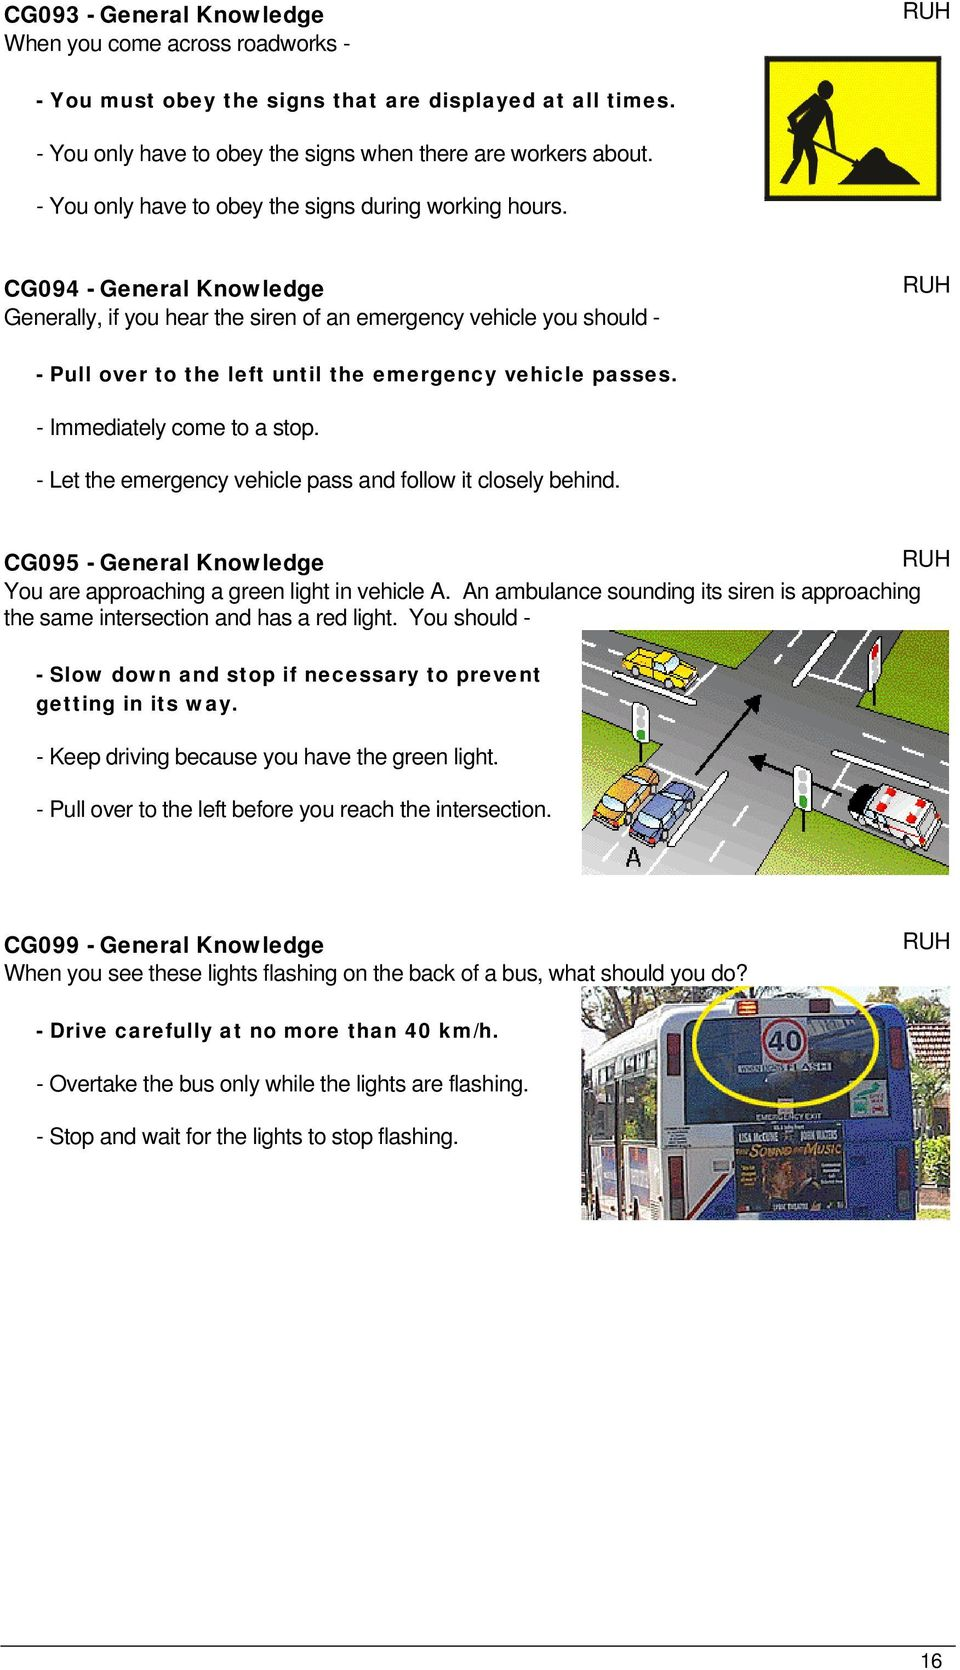 CG094 - General Knowledge Generally, if you hear the siren of an emergency vehicle you should - - Pull over to the left until the emergency vehicle passes. - Immediately come to a stop.